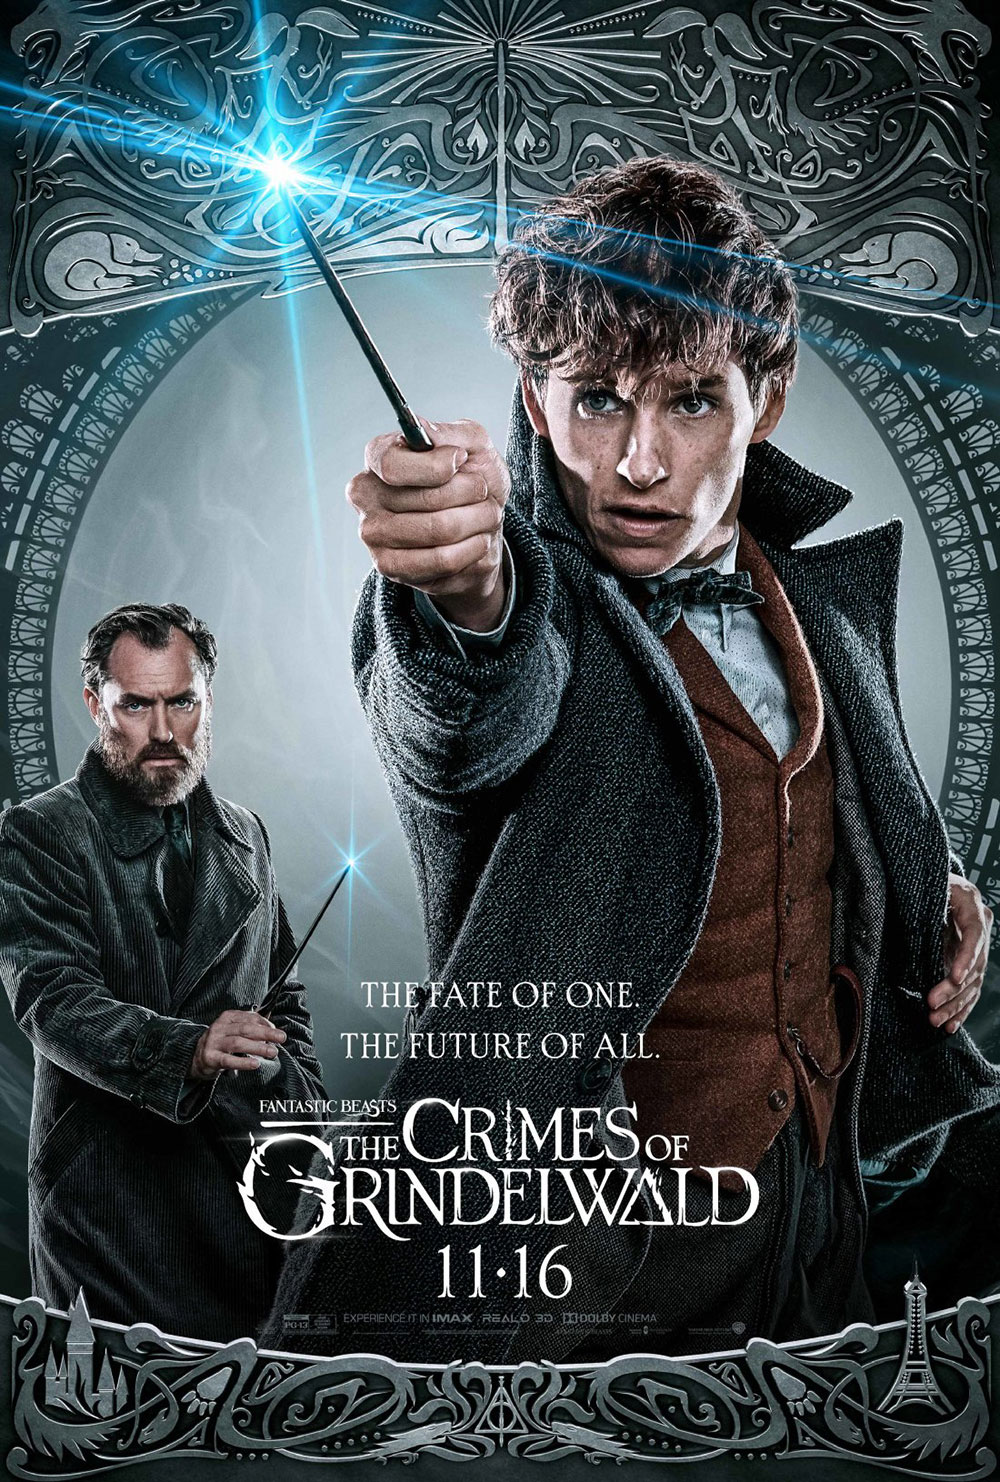 """Fantastic Beasts: The Crimes of Grindelwald"": Newt and Dumbledore character poster"